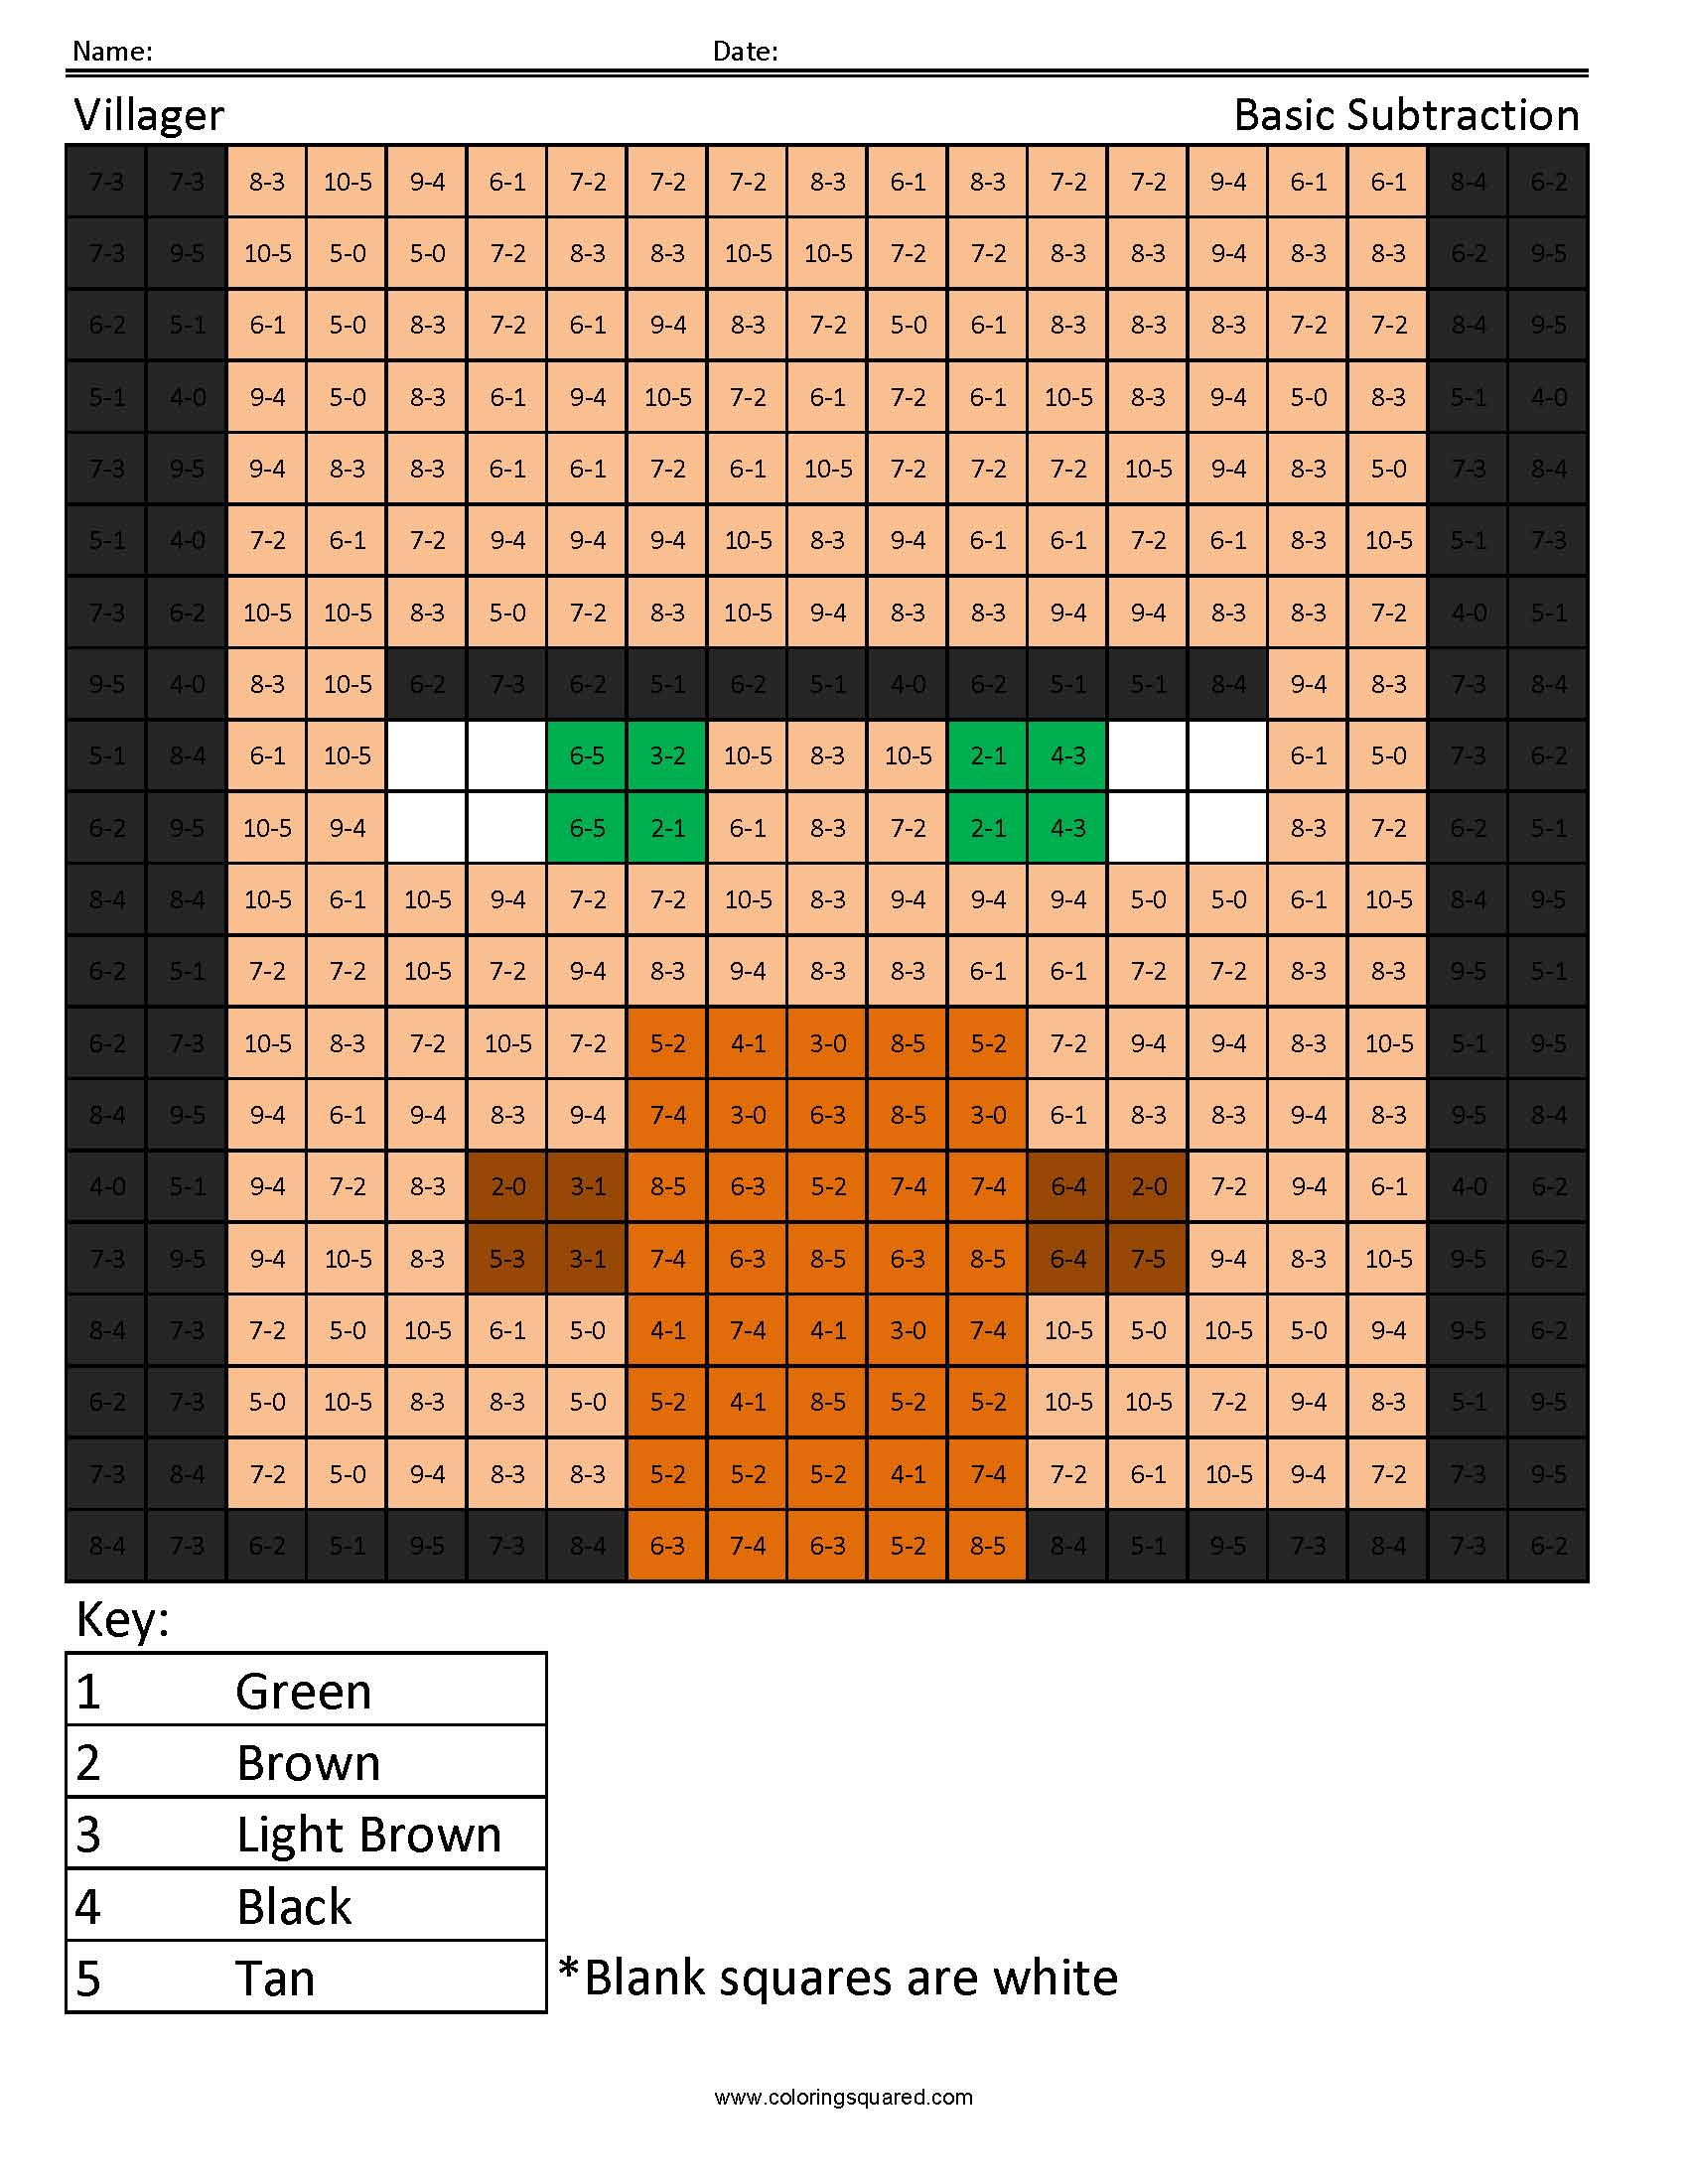 Villager- Basic Subtraction : Coloring Squared